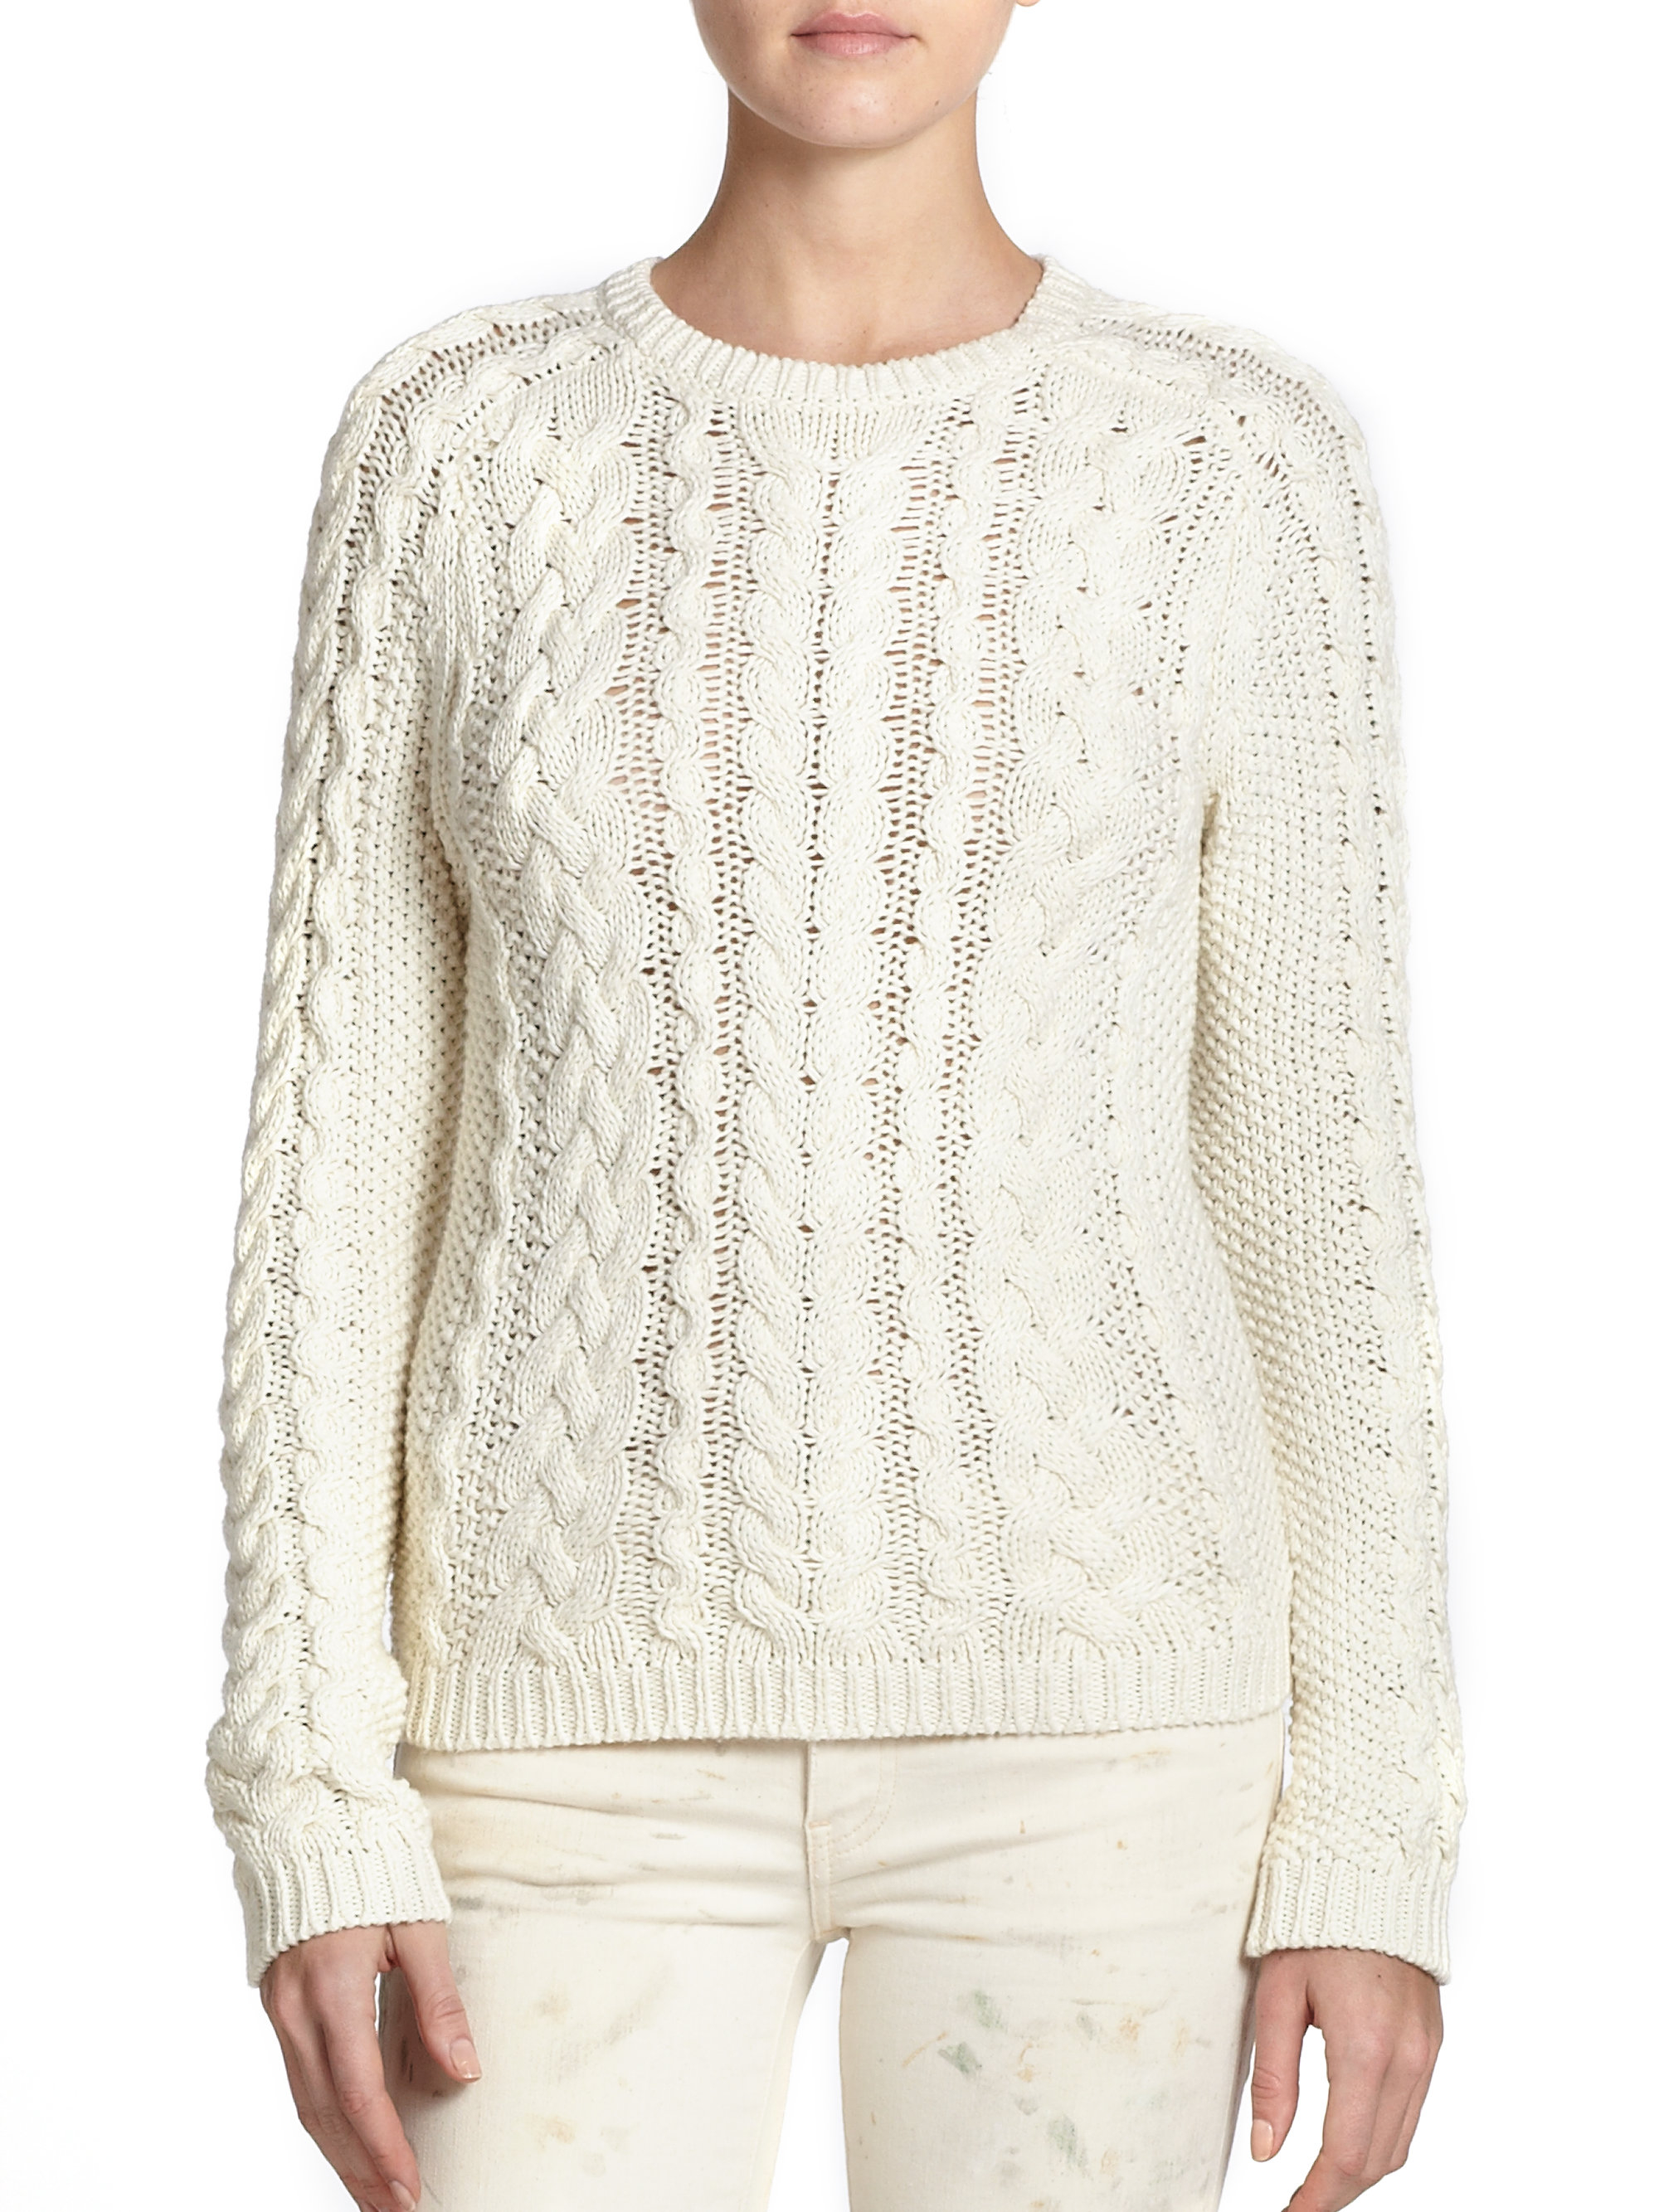 Polo ralph lauren Cotton Cable-Knit Sweater in Natural | Lyst